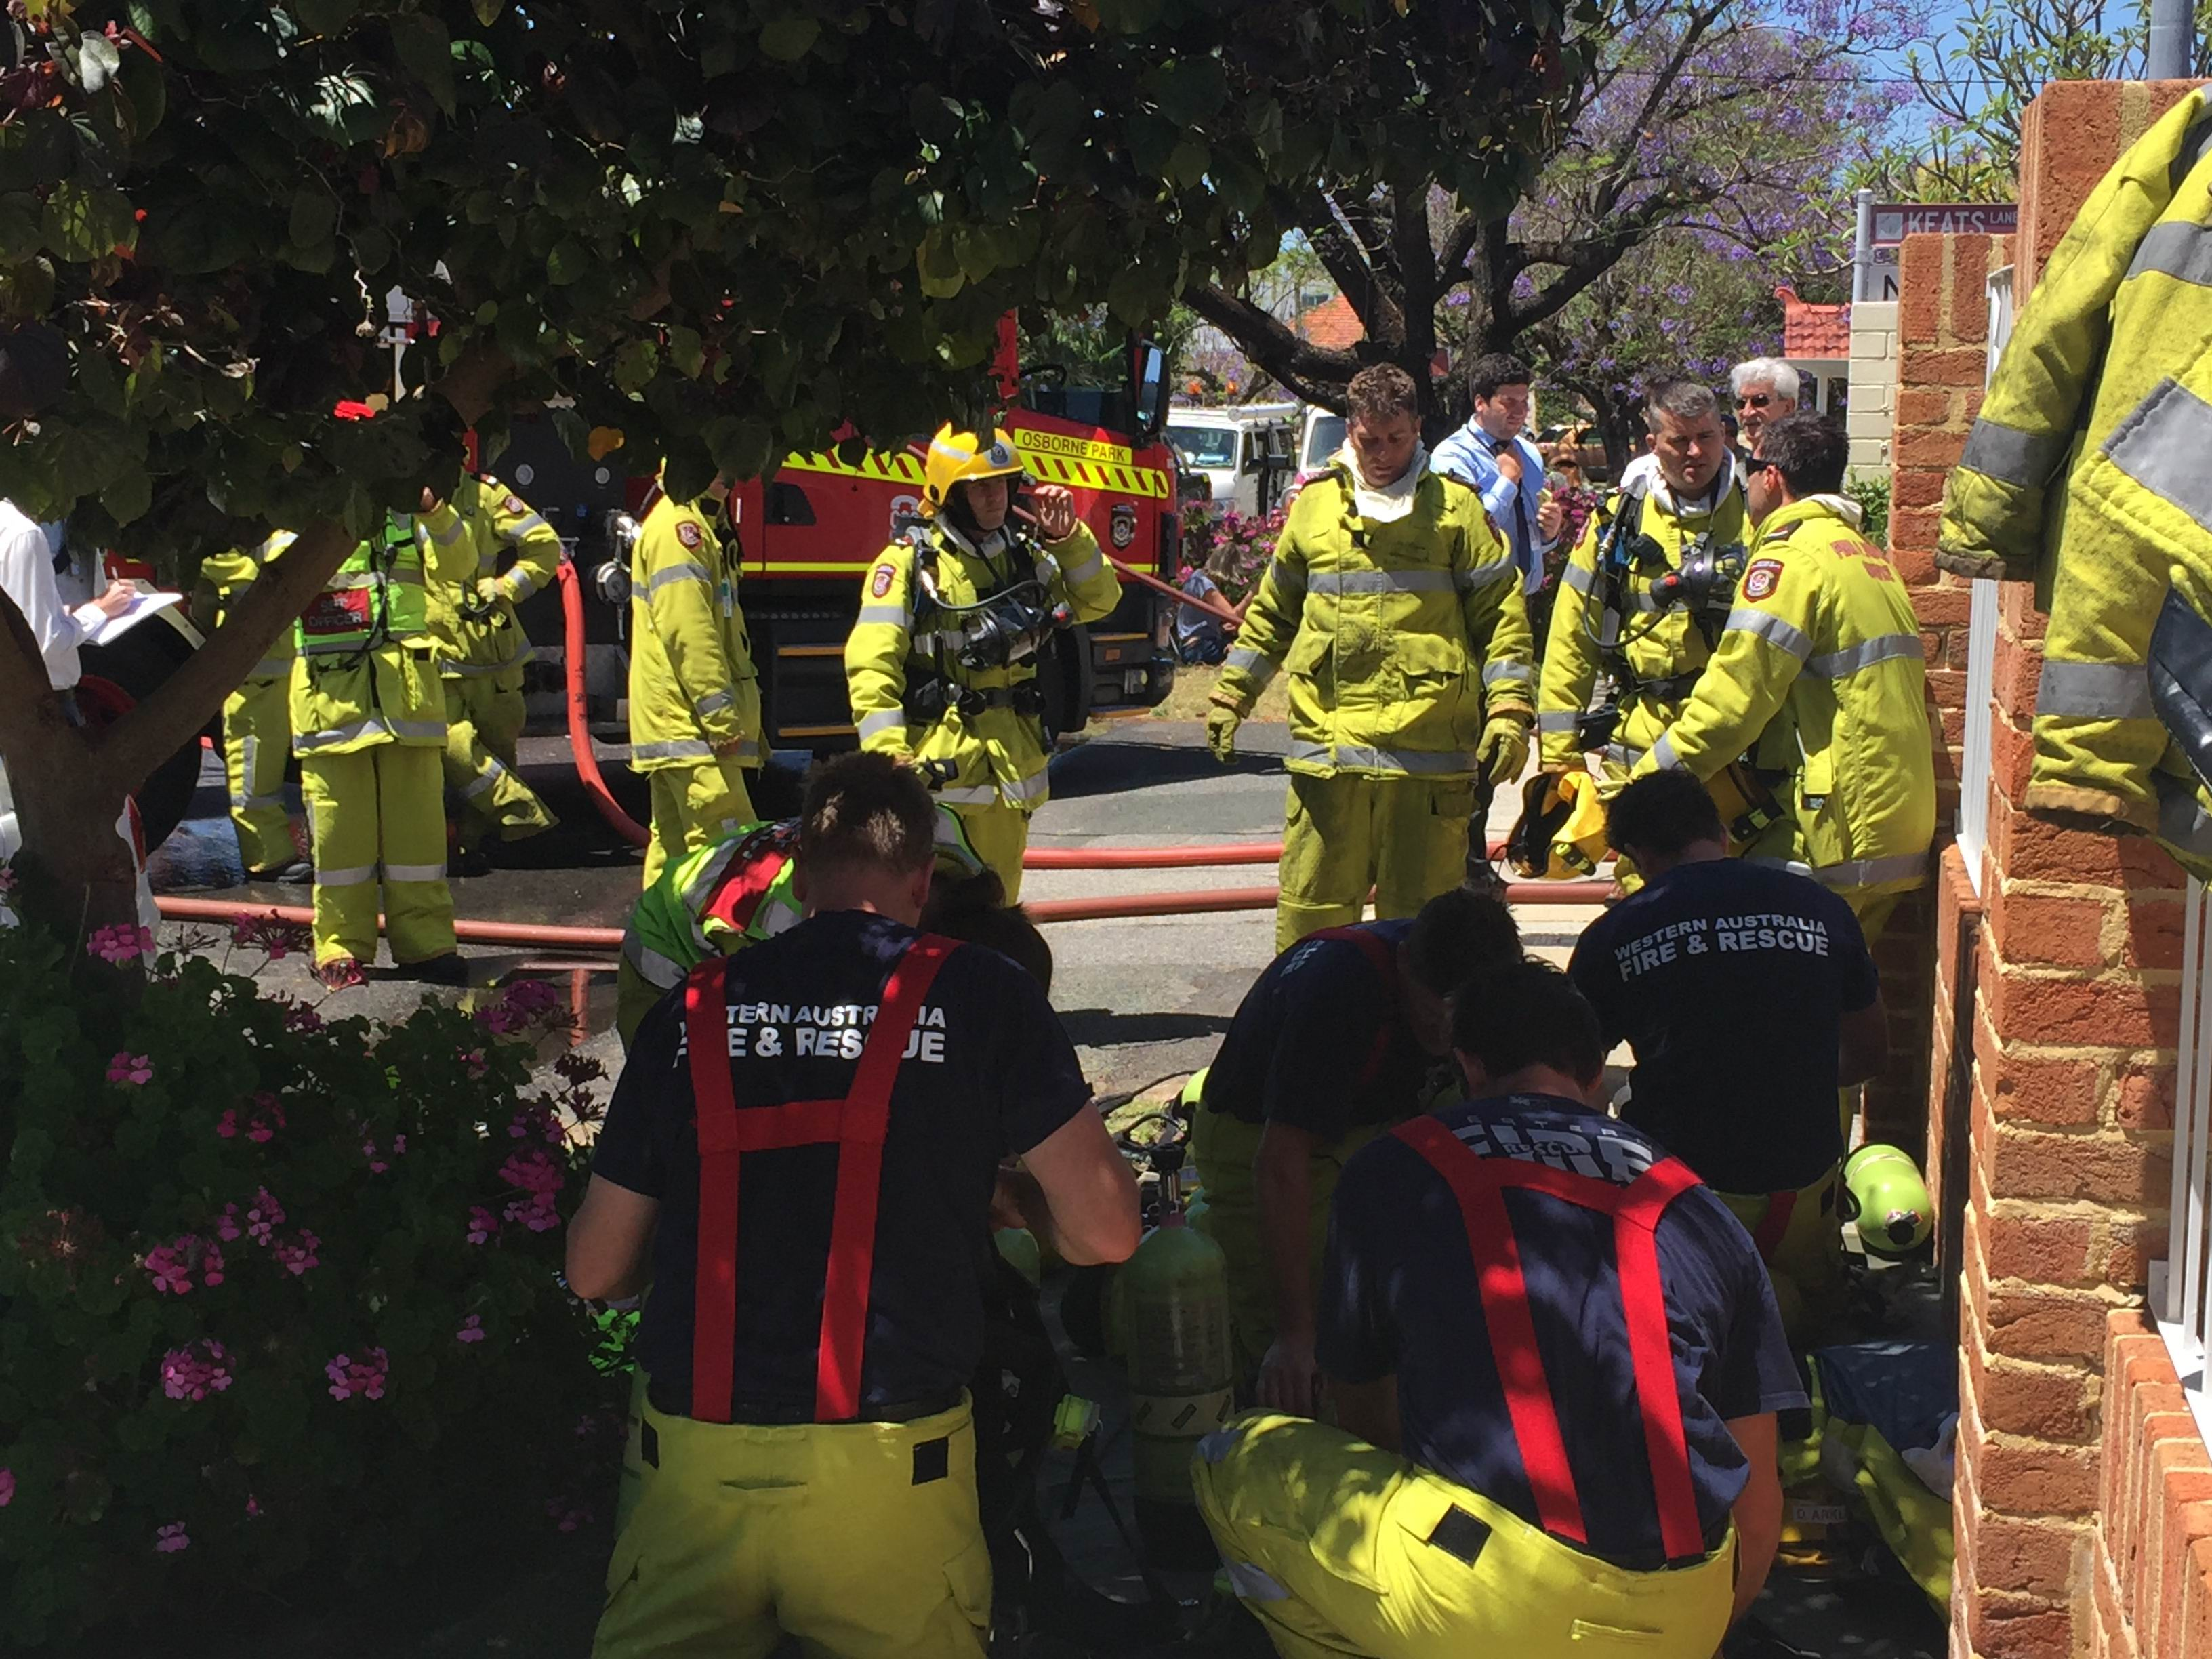 More than 20 fire fighters attended the blaze. Photo: Andrew Ritchie